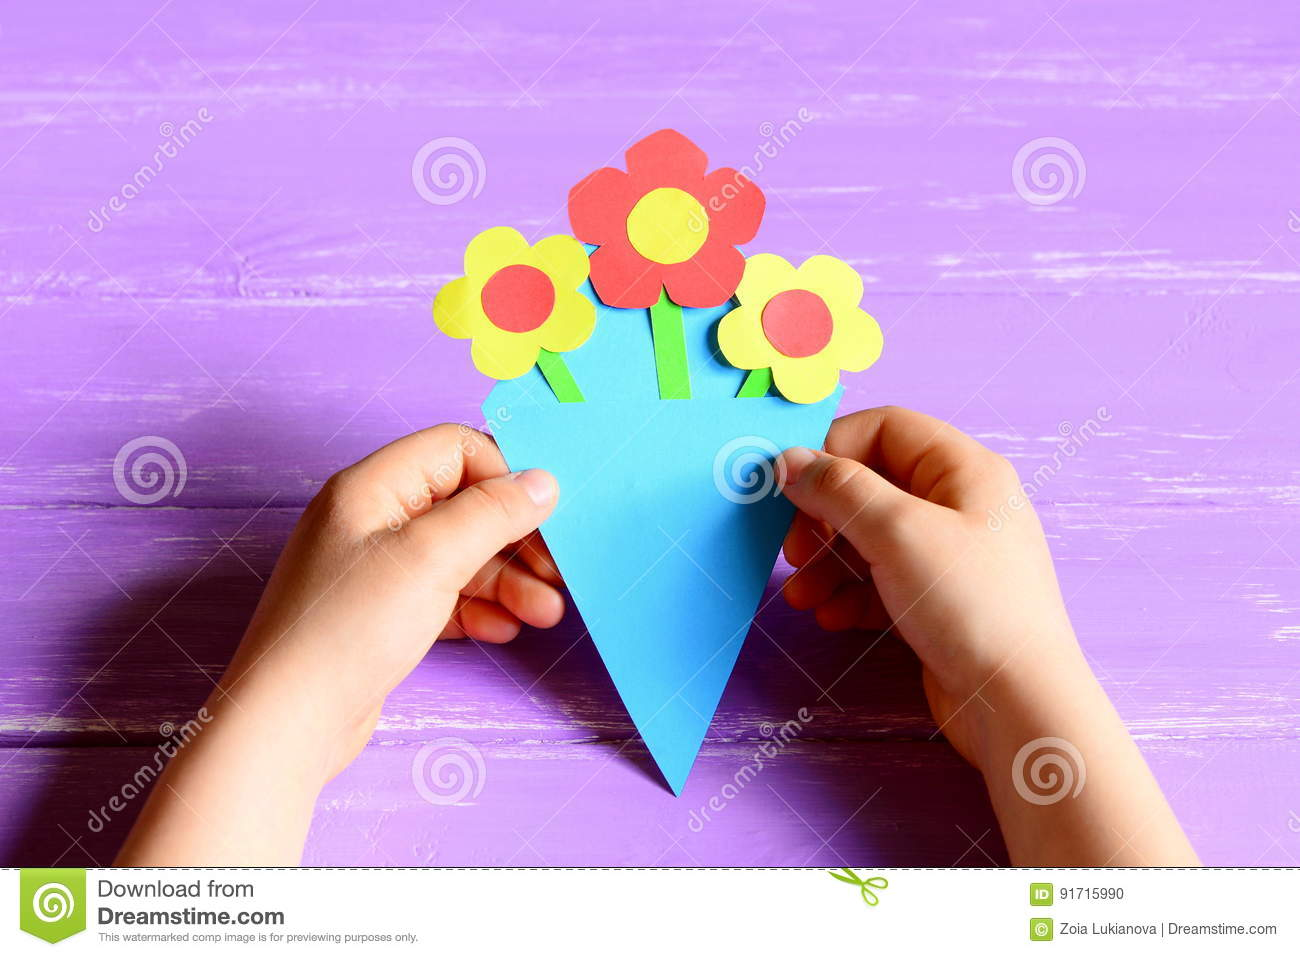 Small Child Made Paper Flowers Crafts For Mothers Day Or Birthday